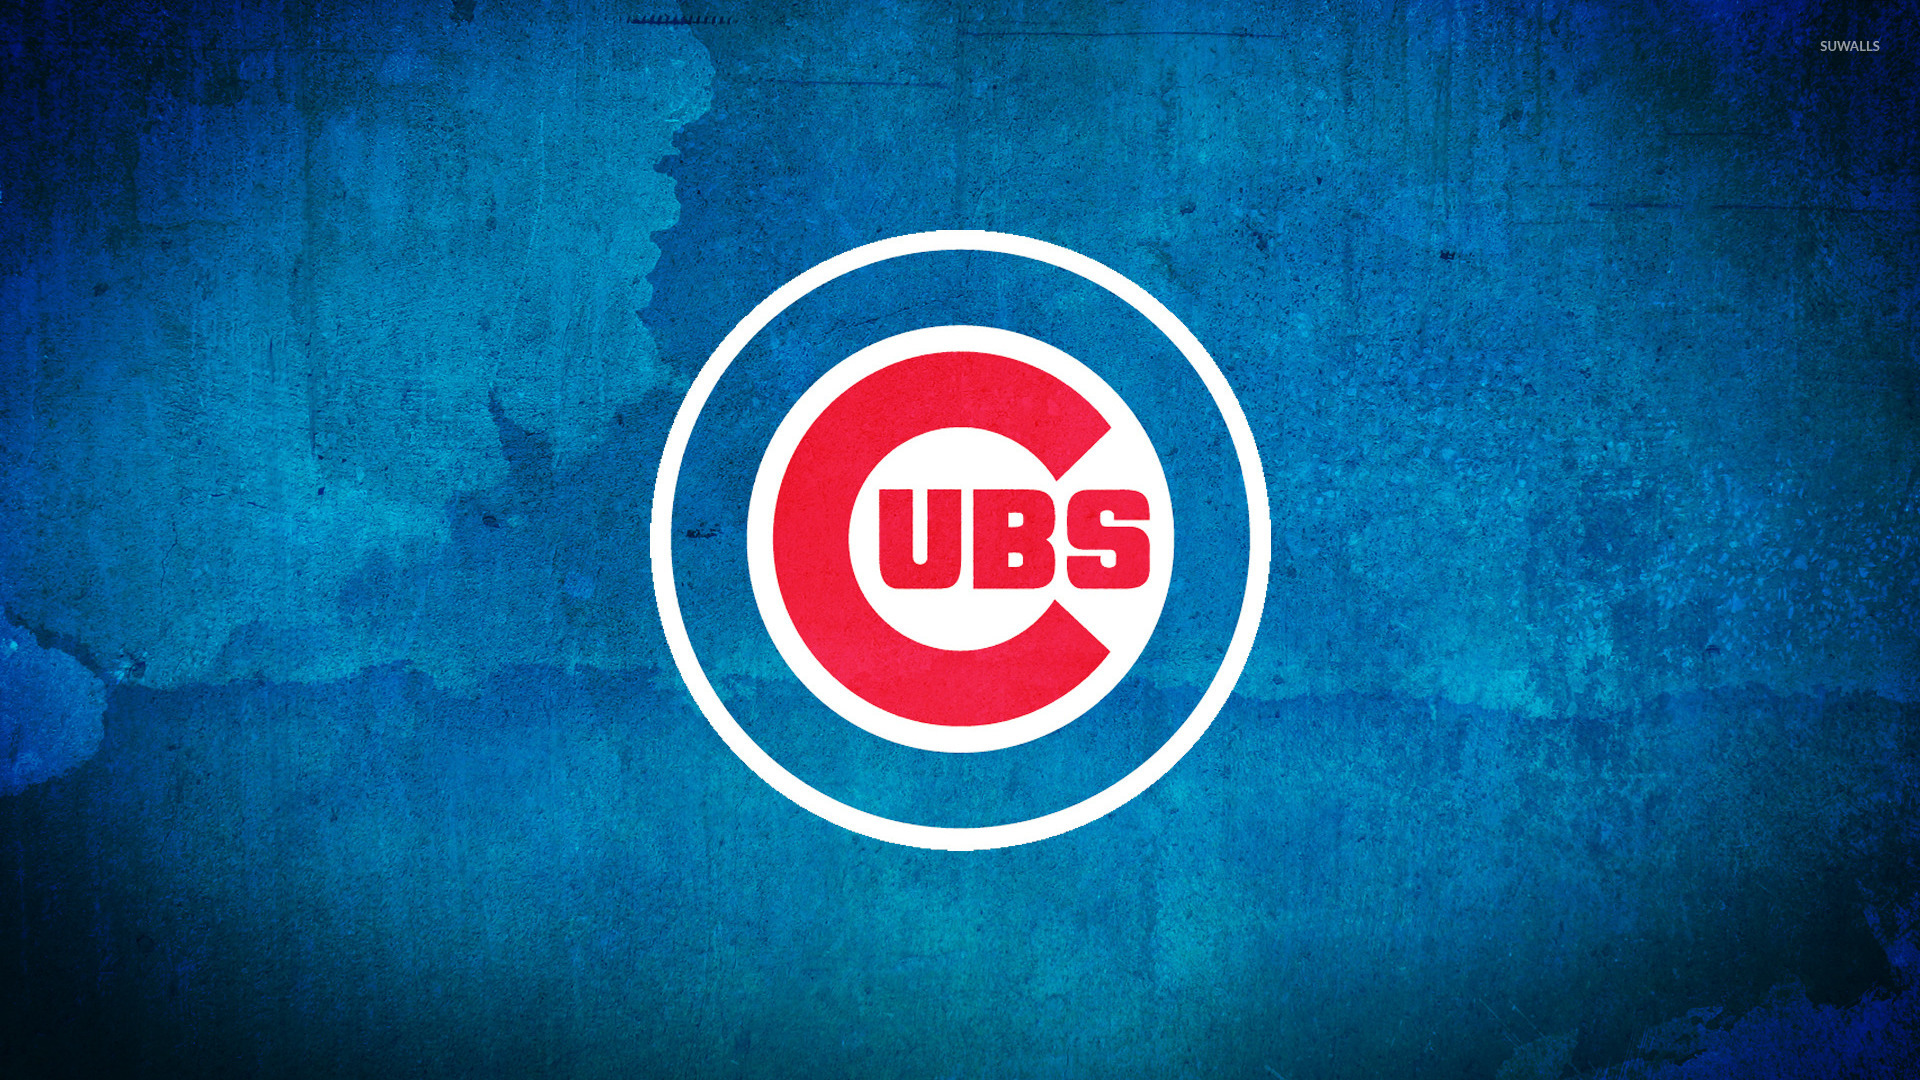 Chicago Cubs wallpaper 1920x1080 1920x1080